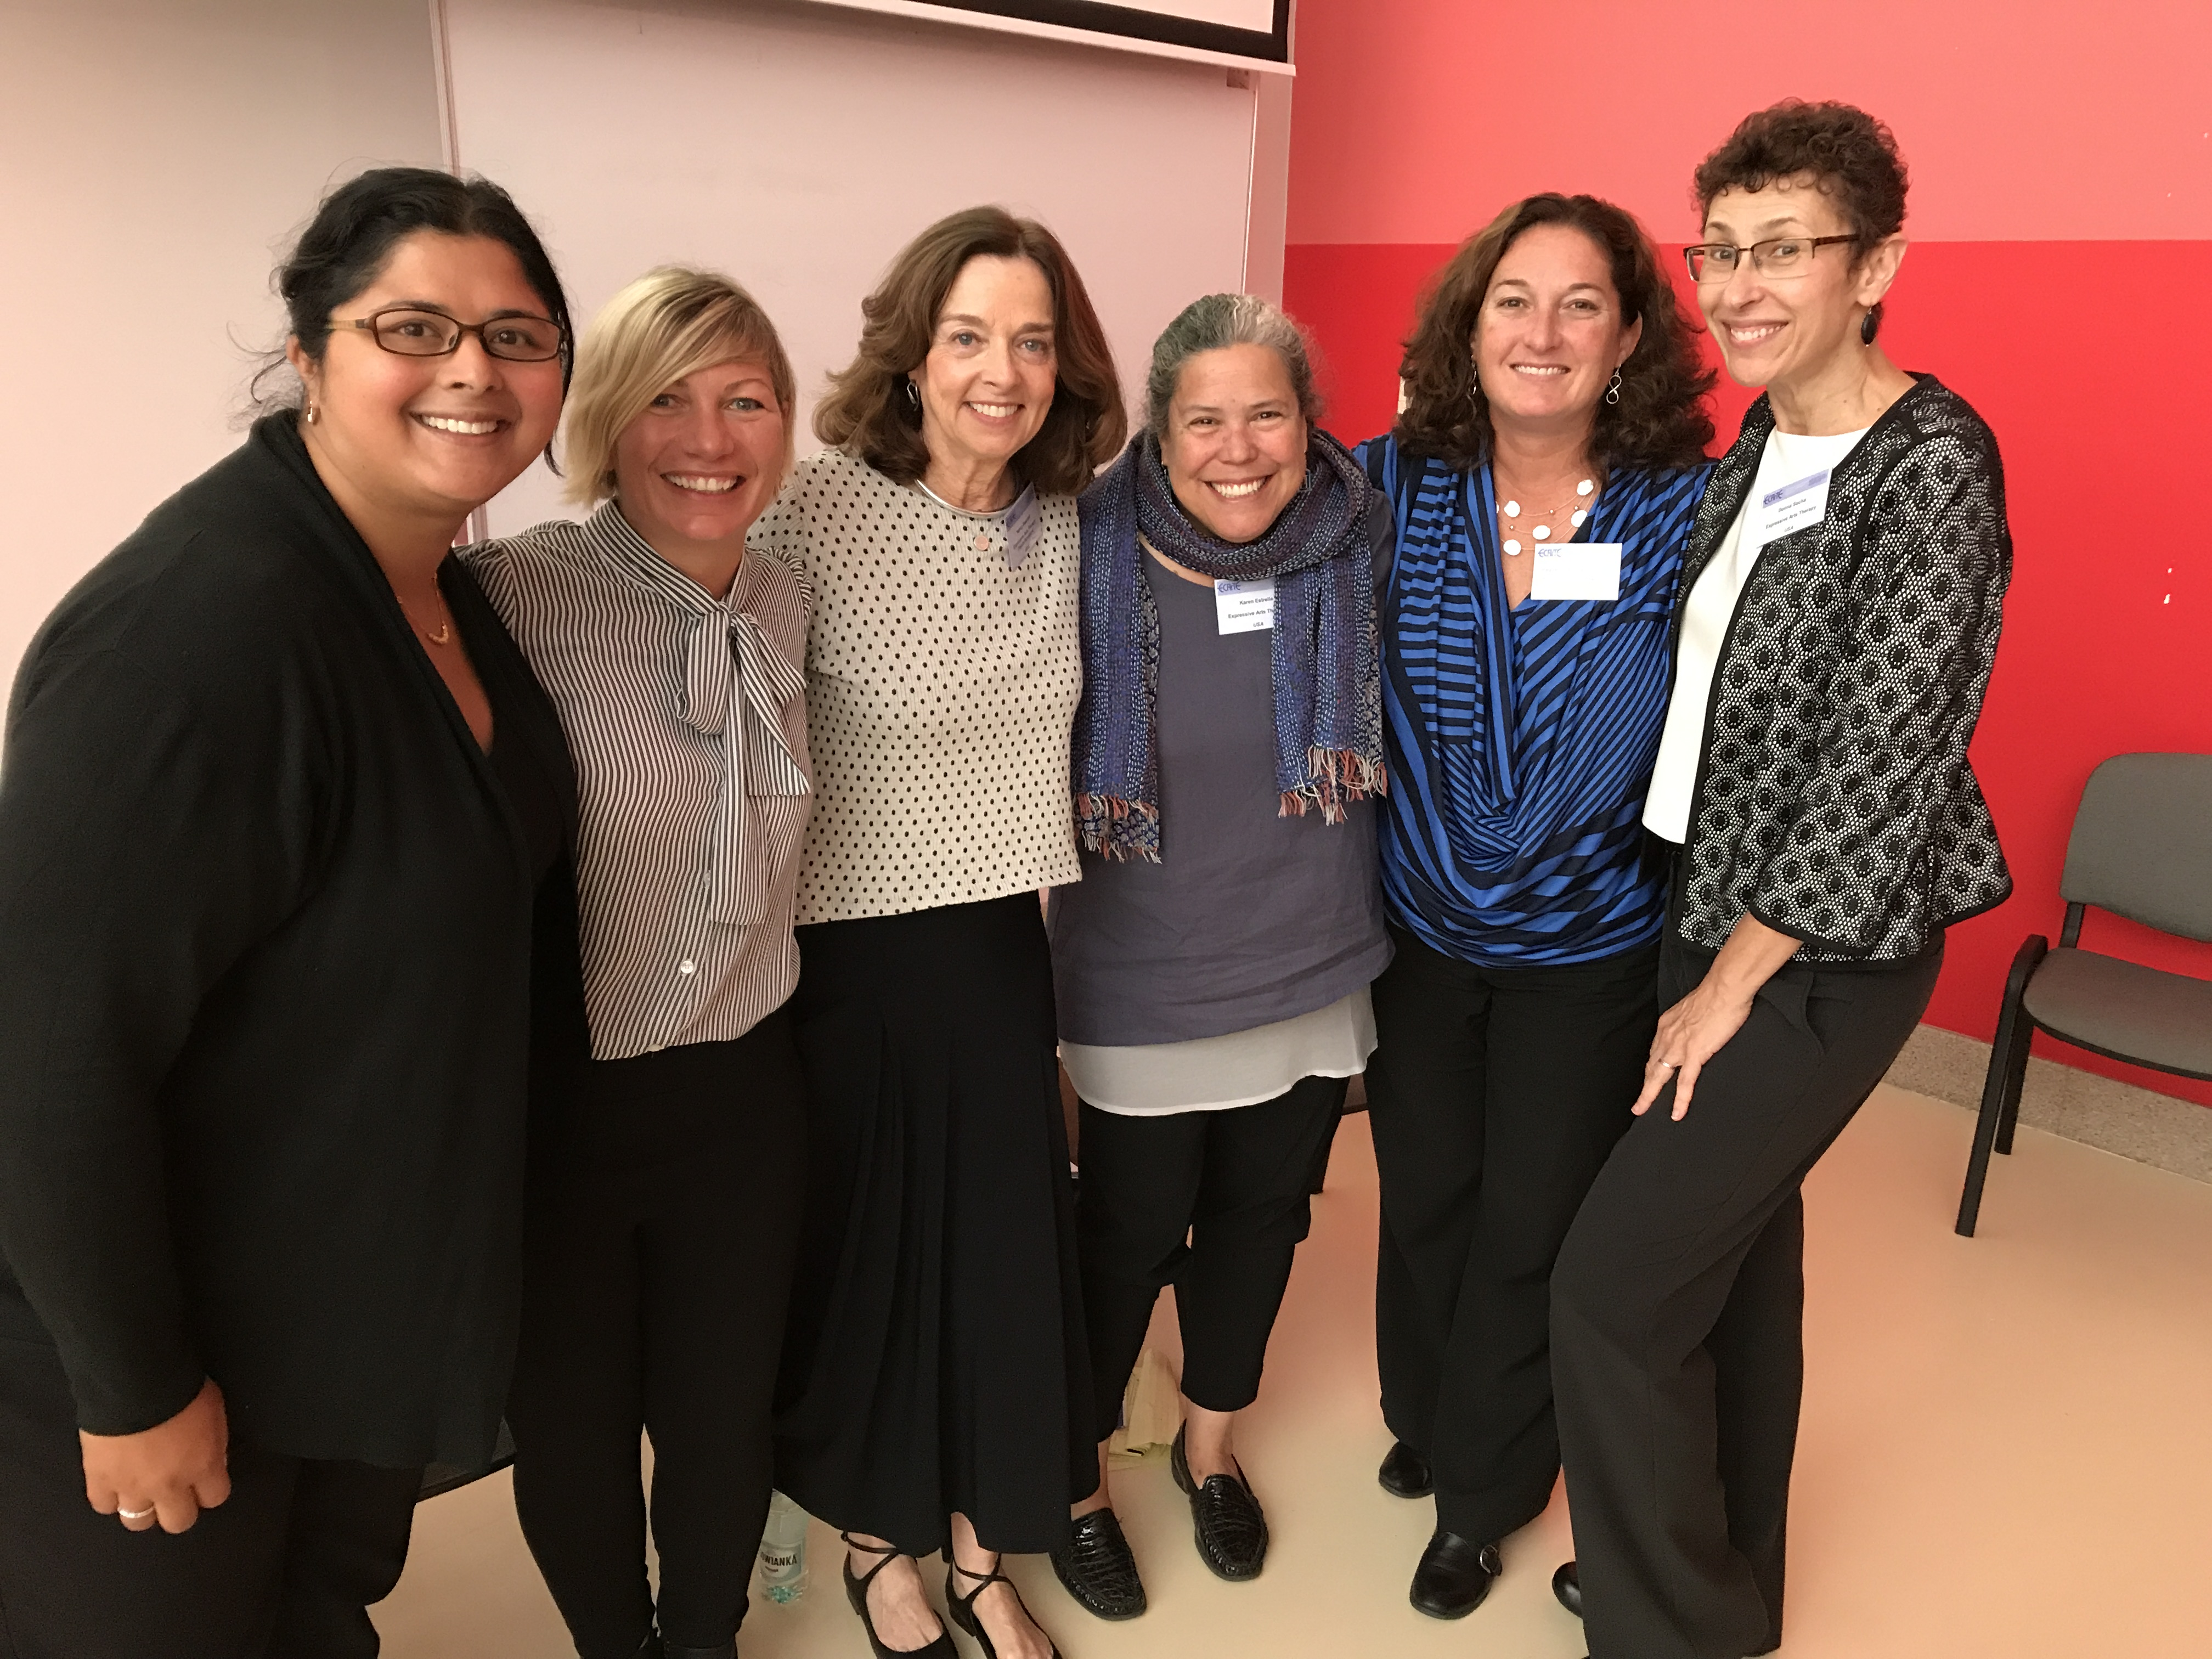 Six teachers pose together at the ECArTE conference.